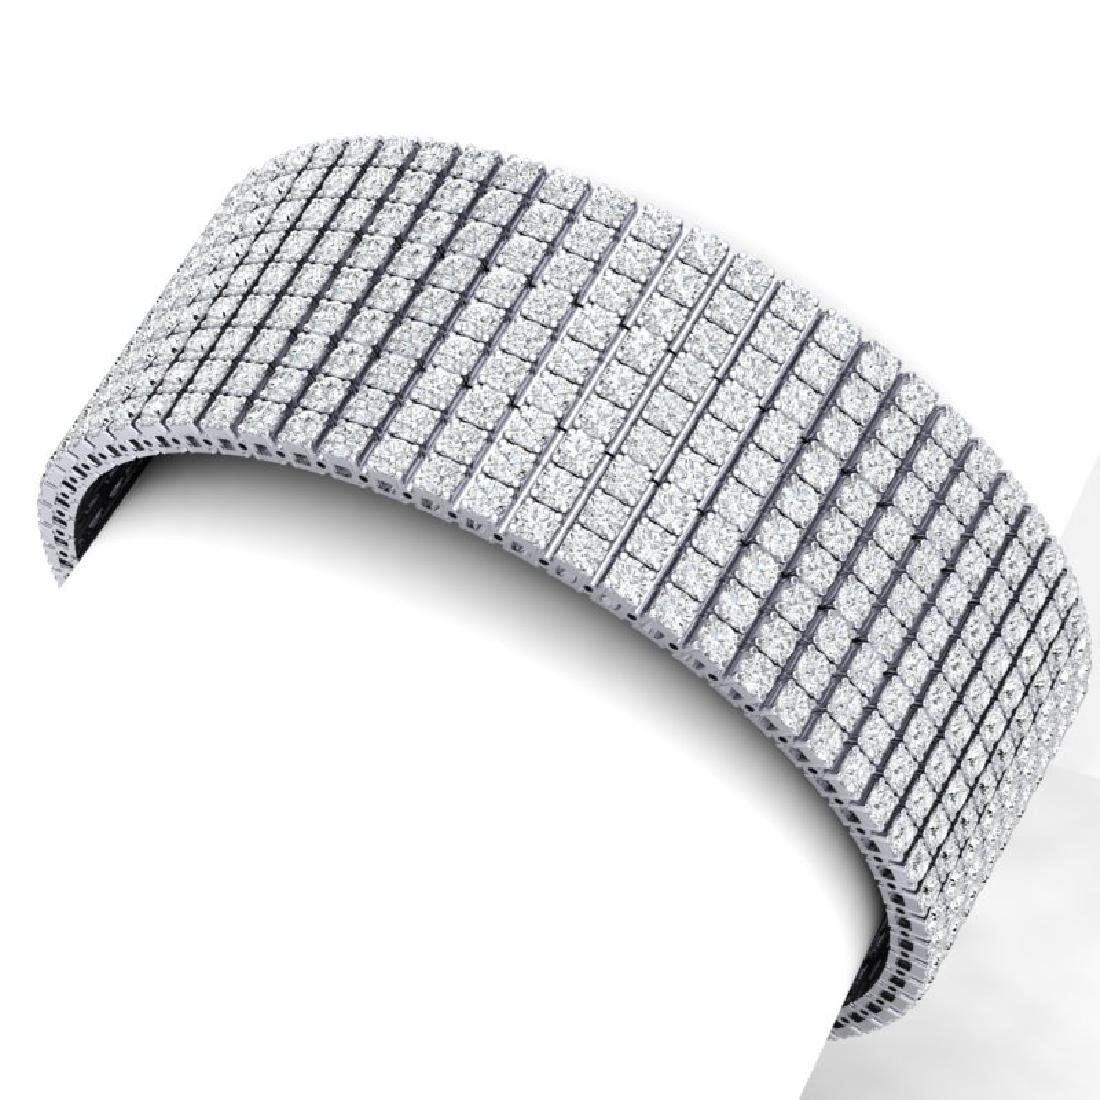 40 CTW Certified VS/SI Diamond Bracelet 18K White Gold